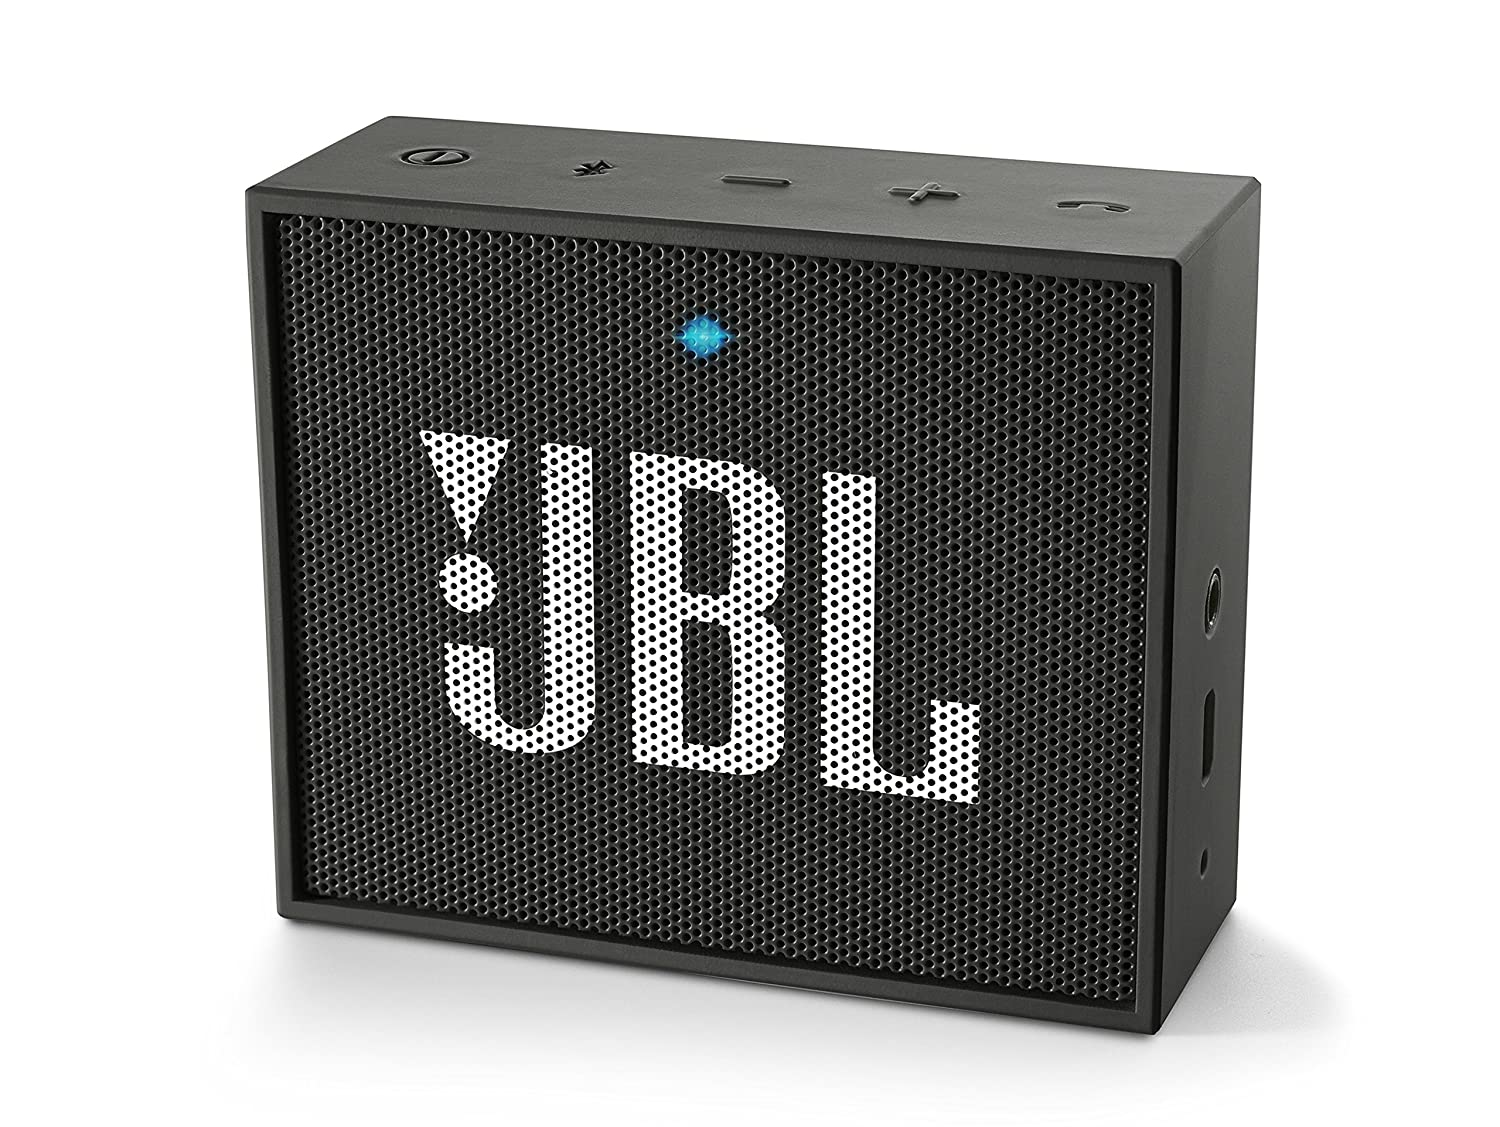 JBL GO Diffusore Bluetooth Portatile, Ricaricabile, Ingresso Aux-In, Vivavoce, Compatibilità Smartphone/Tablet e Dispositivo MP3, Nero Compatibilità Smartphone/Tablet e Dispositivo MP3 HARMAN INTERNATIONAL JBLGOBLK